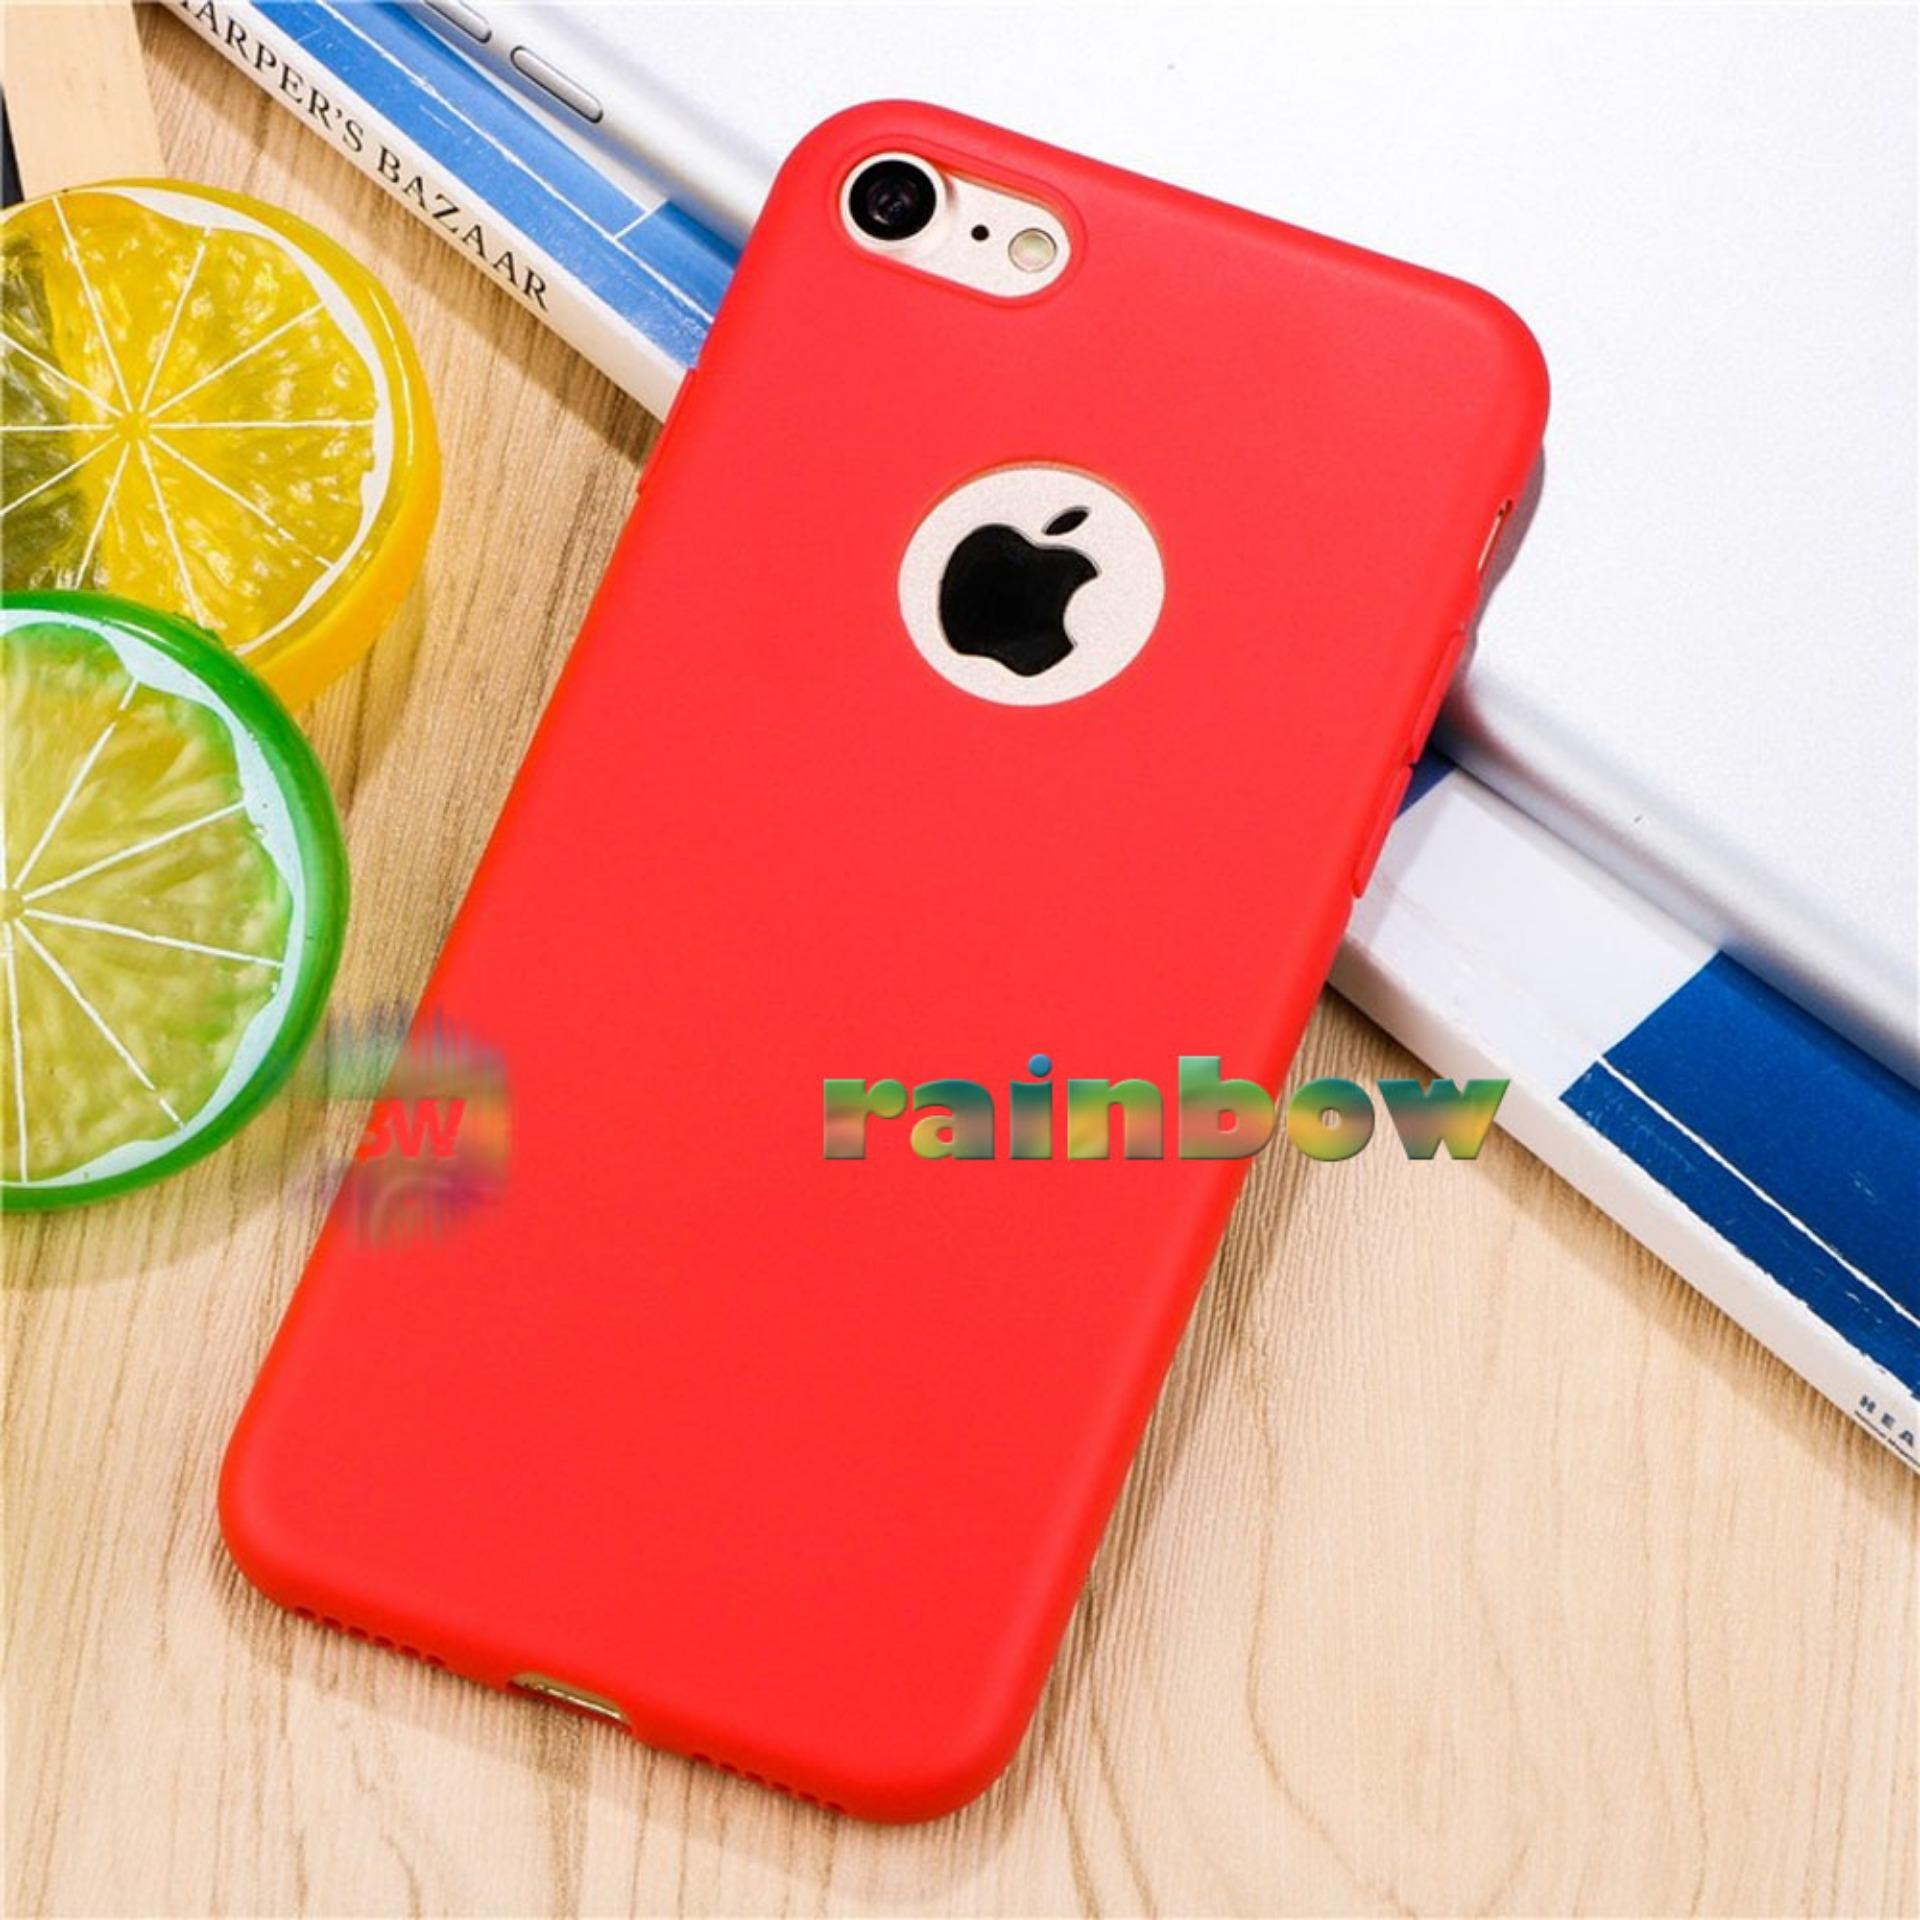 Lize Apple Iphone6 / Iphone 6 / Iphone 6G / Iphone 6S Ori Ukuran 4.7 inch / Softshell / Jelly Case / Soft Case / Soft Back Case / Silicone / Silicon / Silikon / Case Iphone / Case HP / Casing Handphone Iphone 6 - Merah